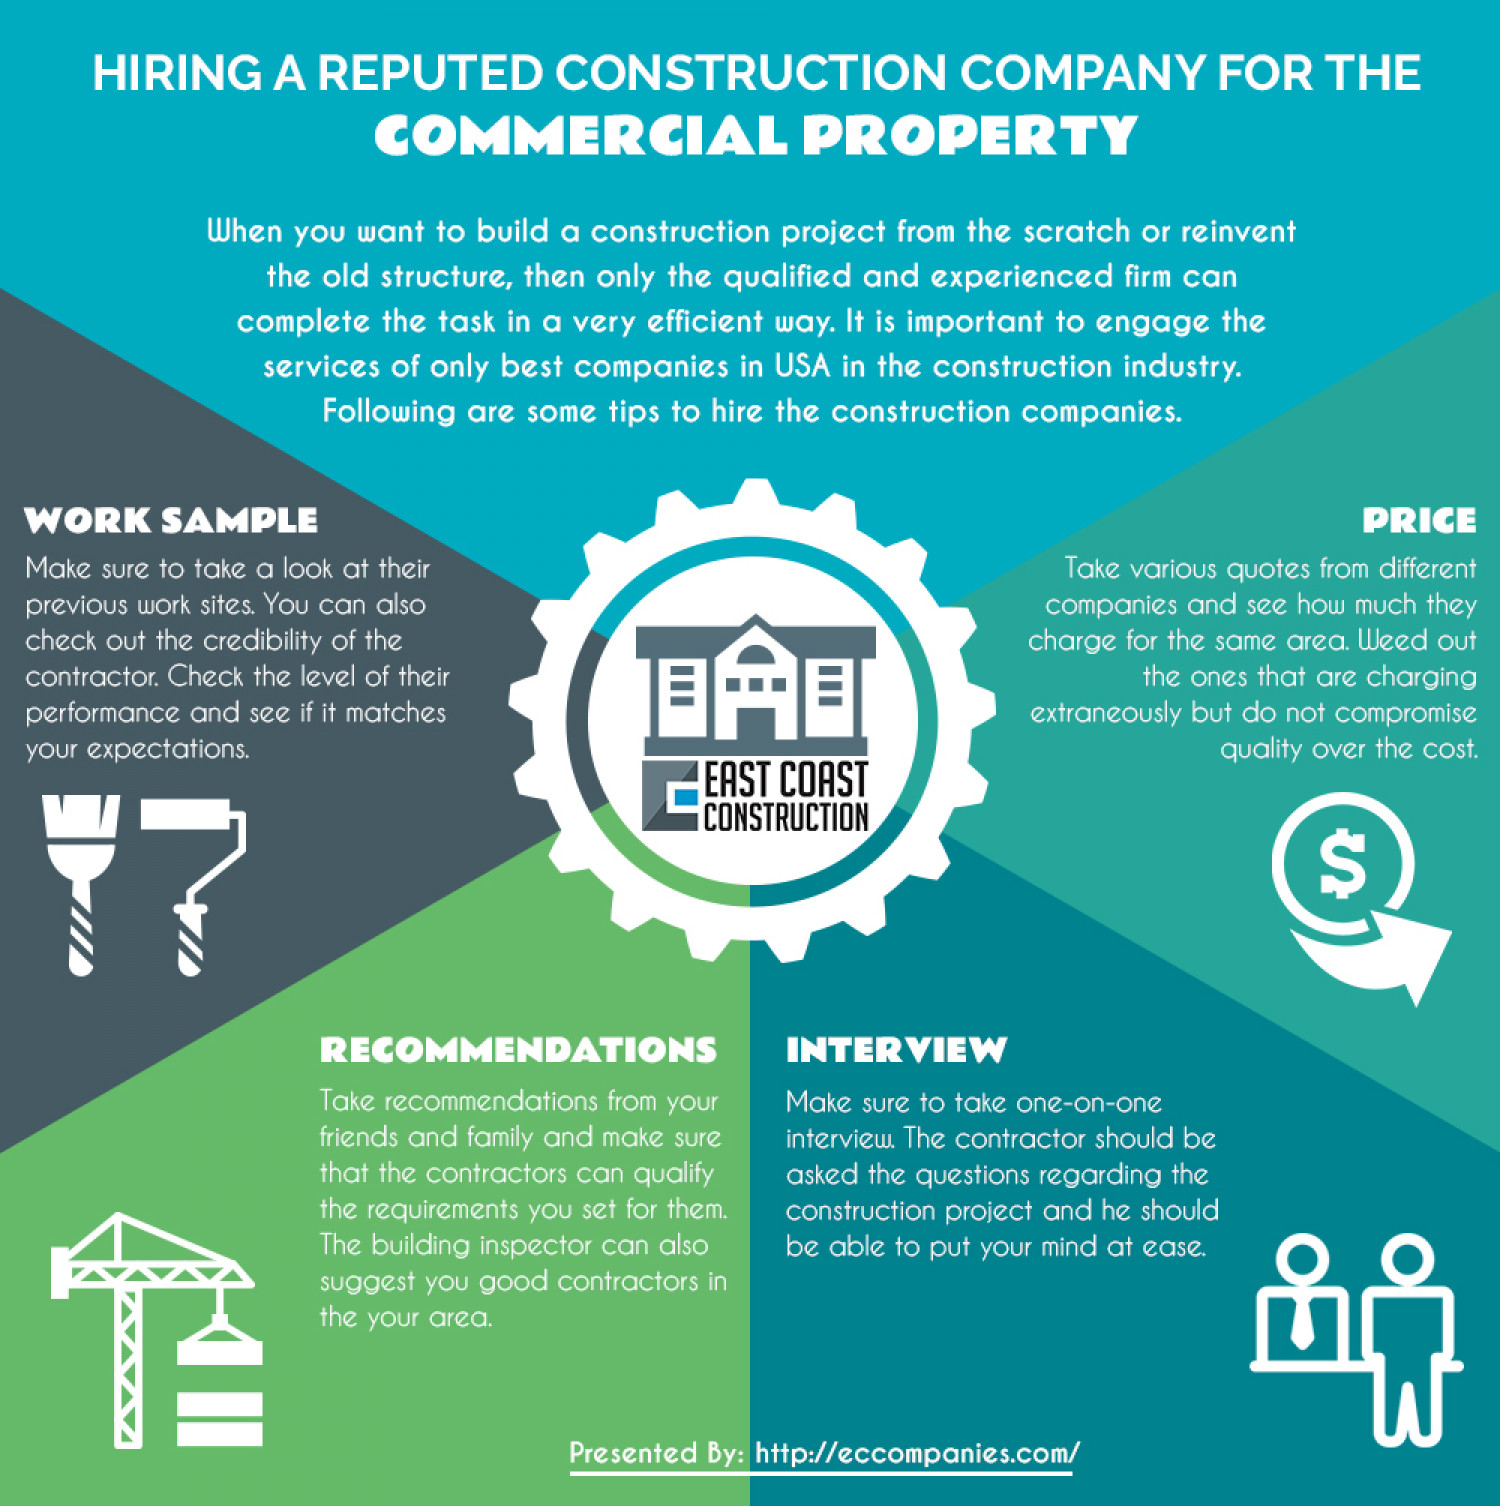 HIRING A REPUTED CONSTRUCTION COMPANY FOR THE COMMERCIAL PROPERTY Infographic